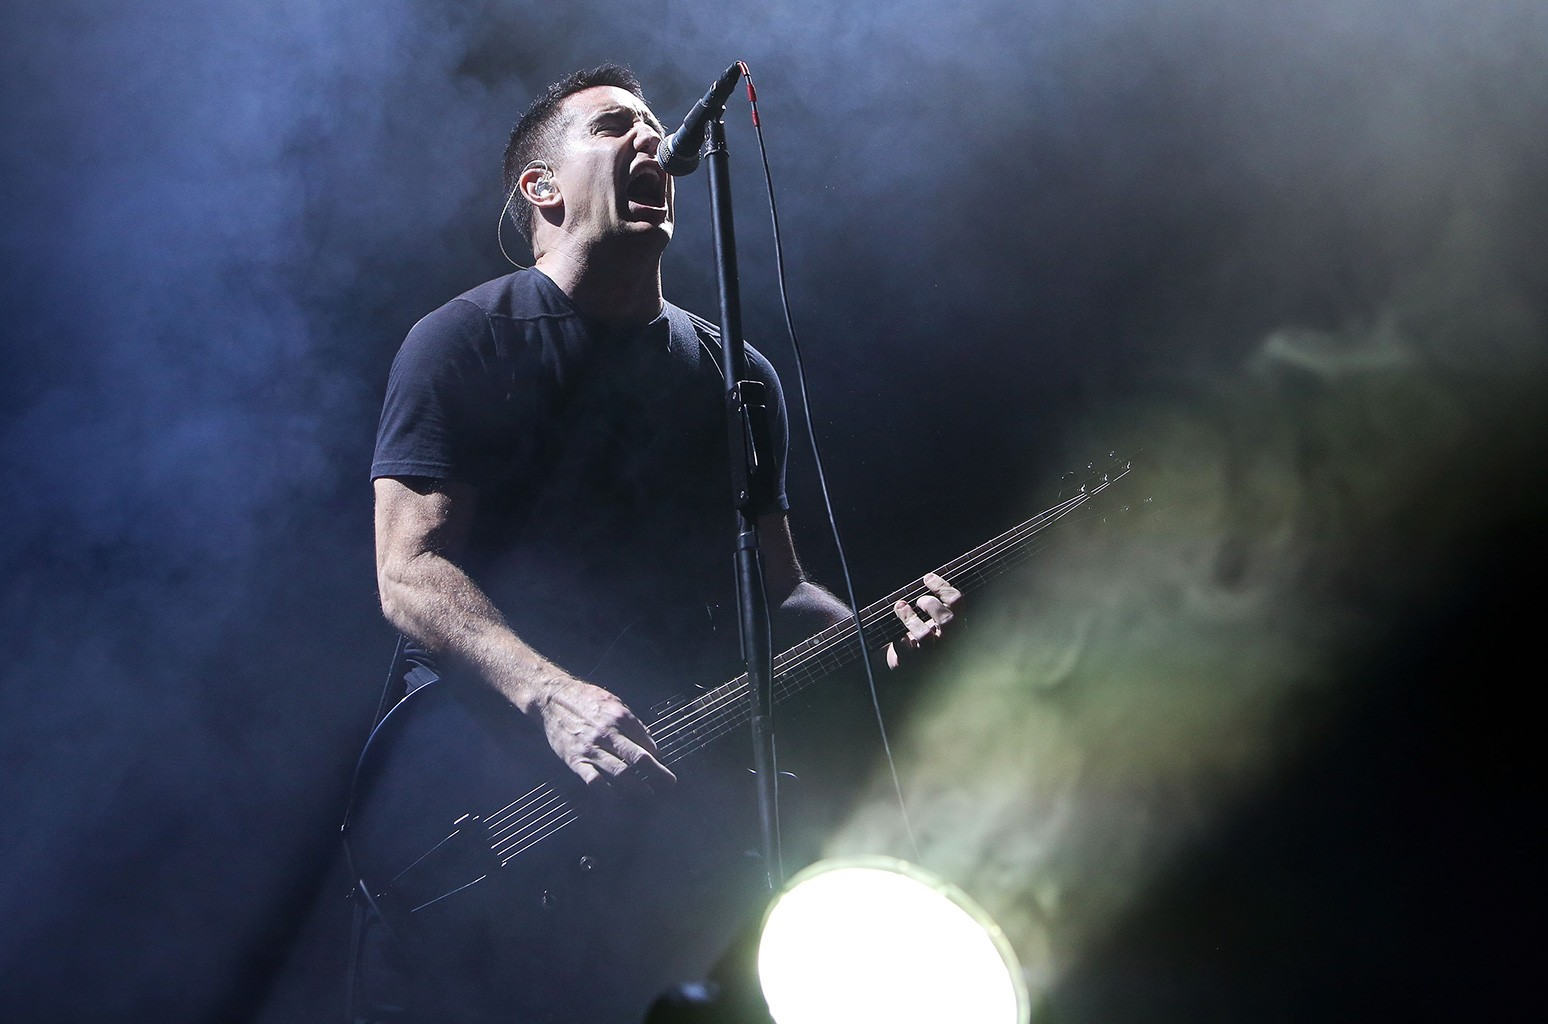 Trent Reznor of Nine Inch Nails performs on stage at TSB Arena on March 20, 2014 in Wellington, New Zealand.